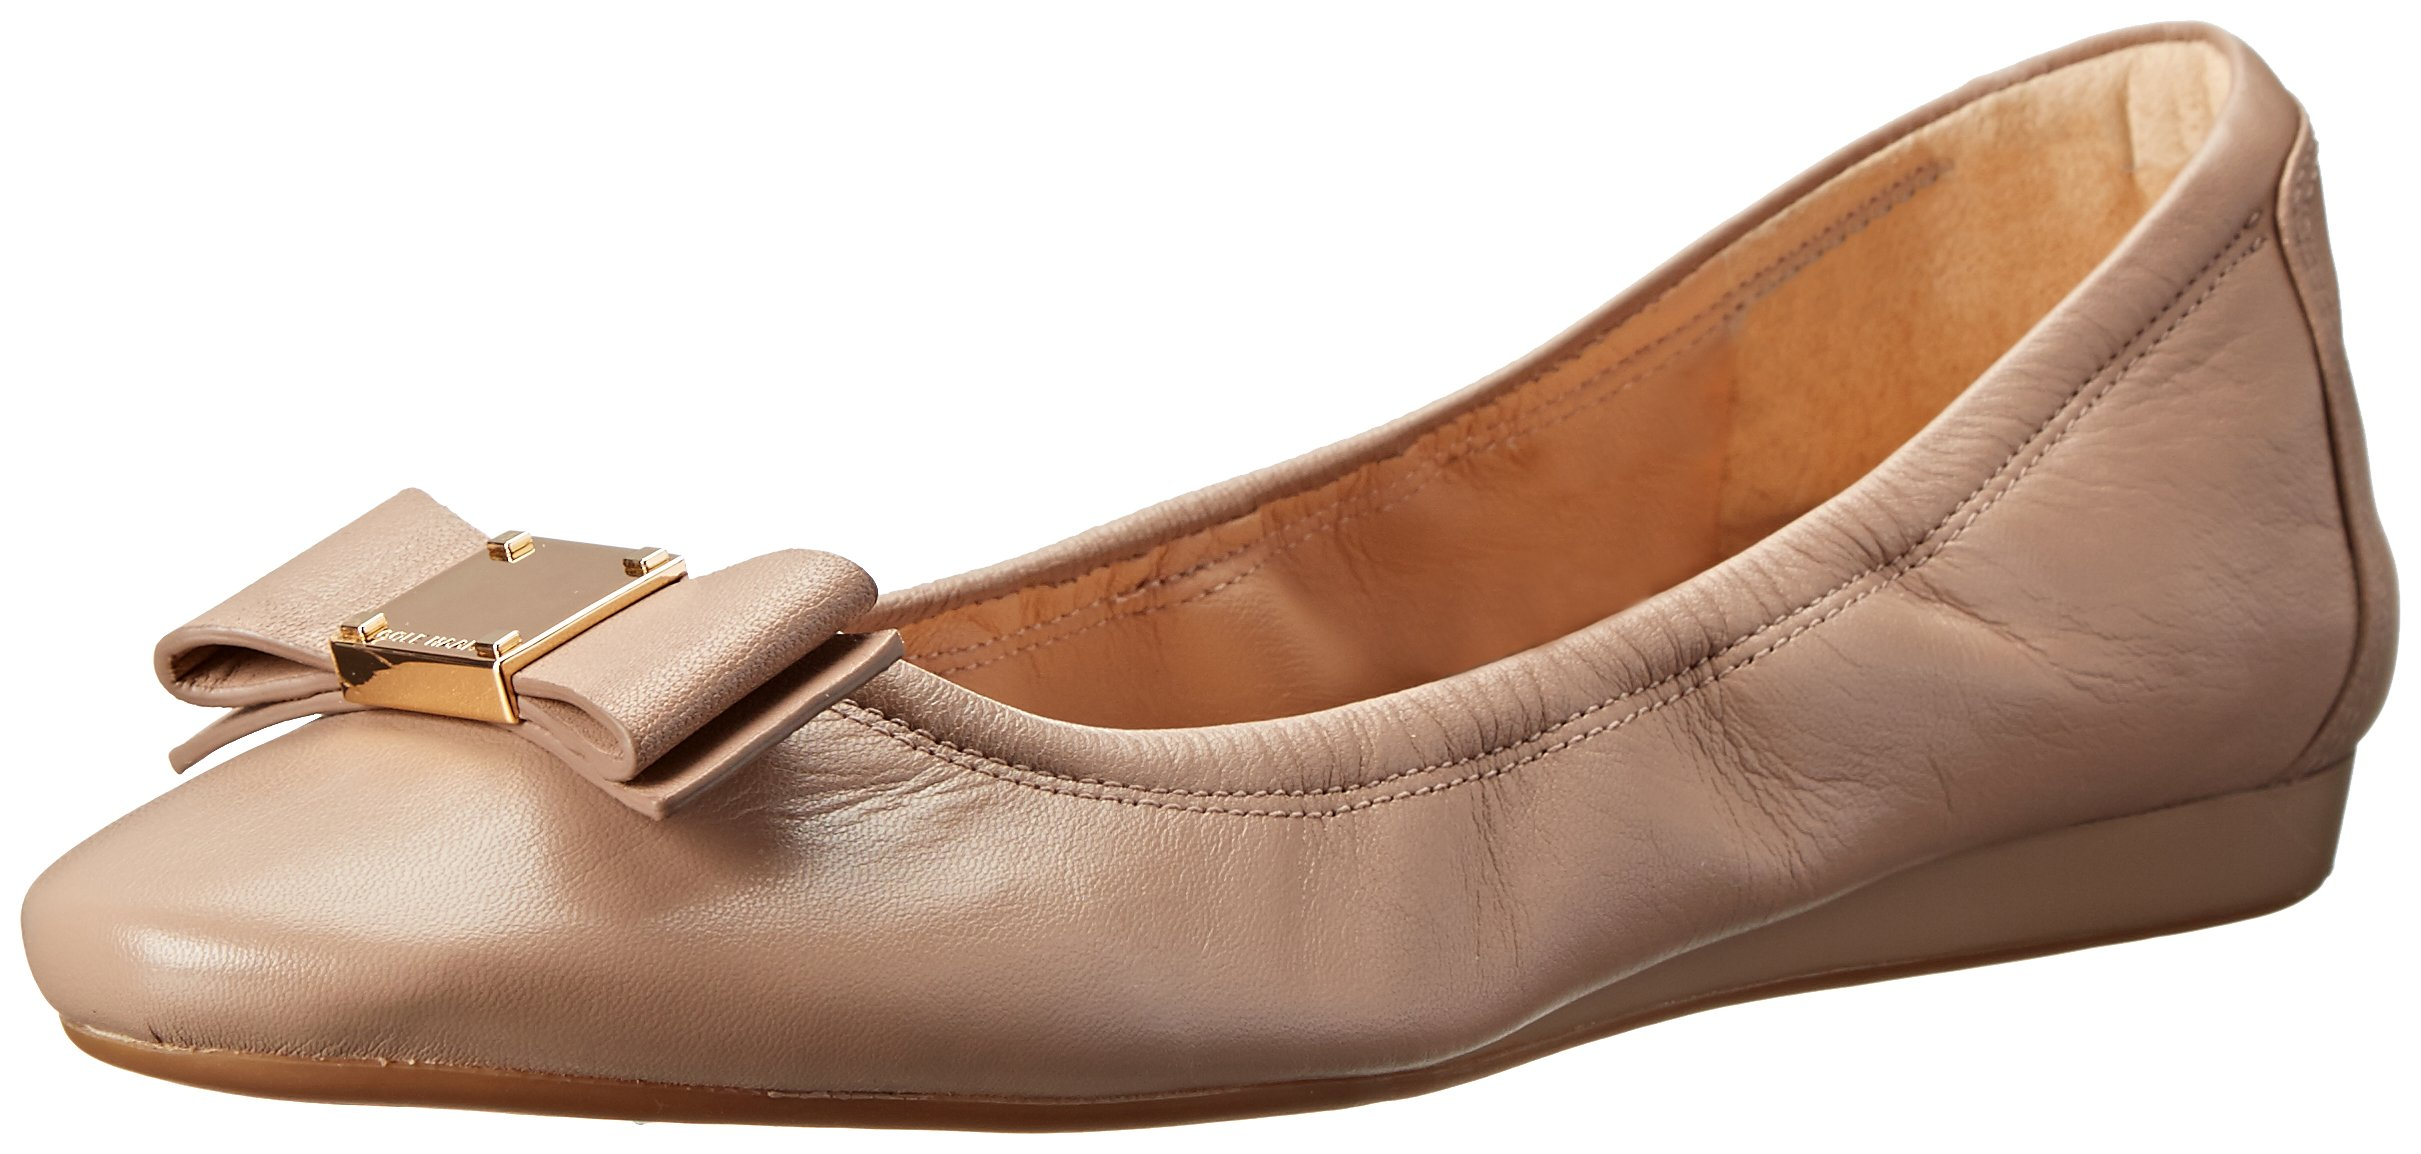 Cole Haan Women's TALI BOW BALLET Shoe, Maple Sugar Leather, 10 B US by Cole Haan